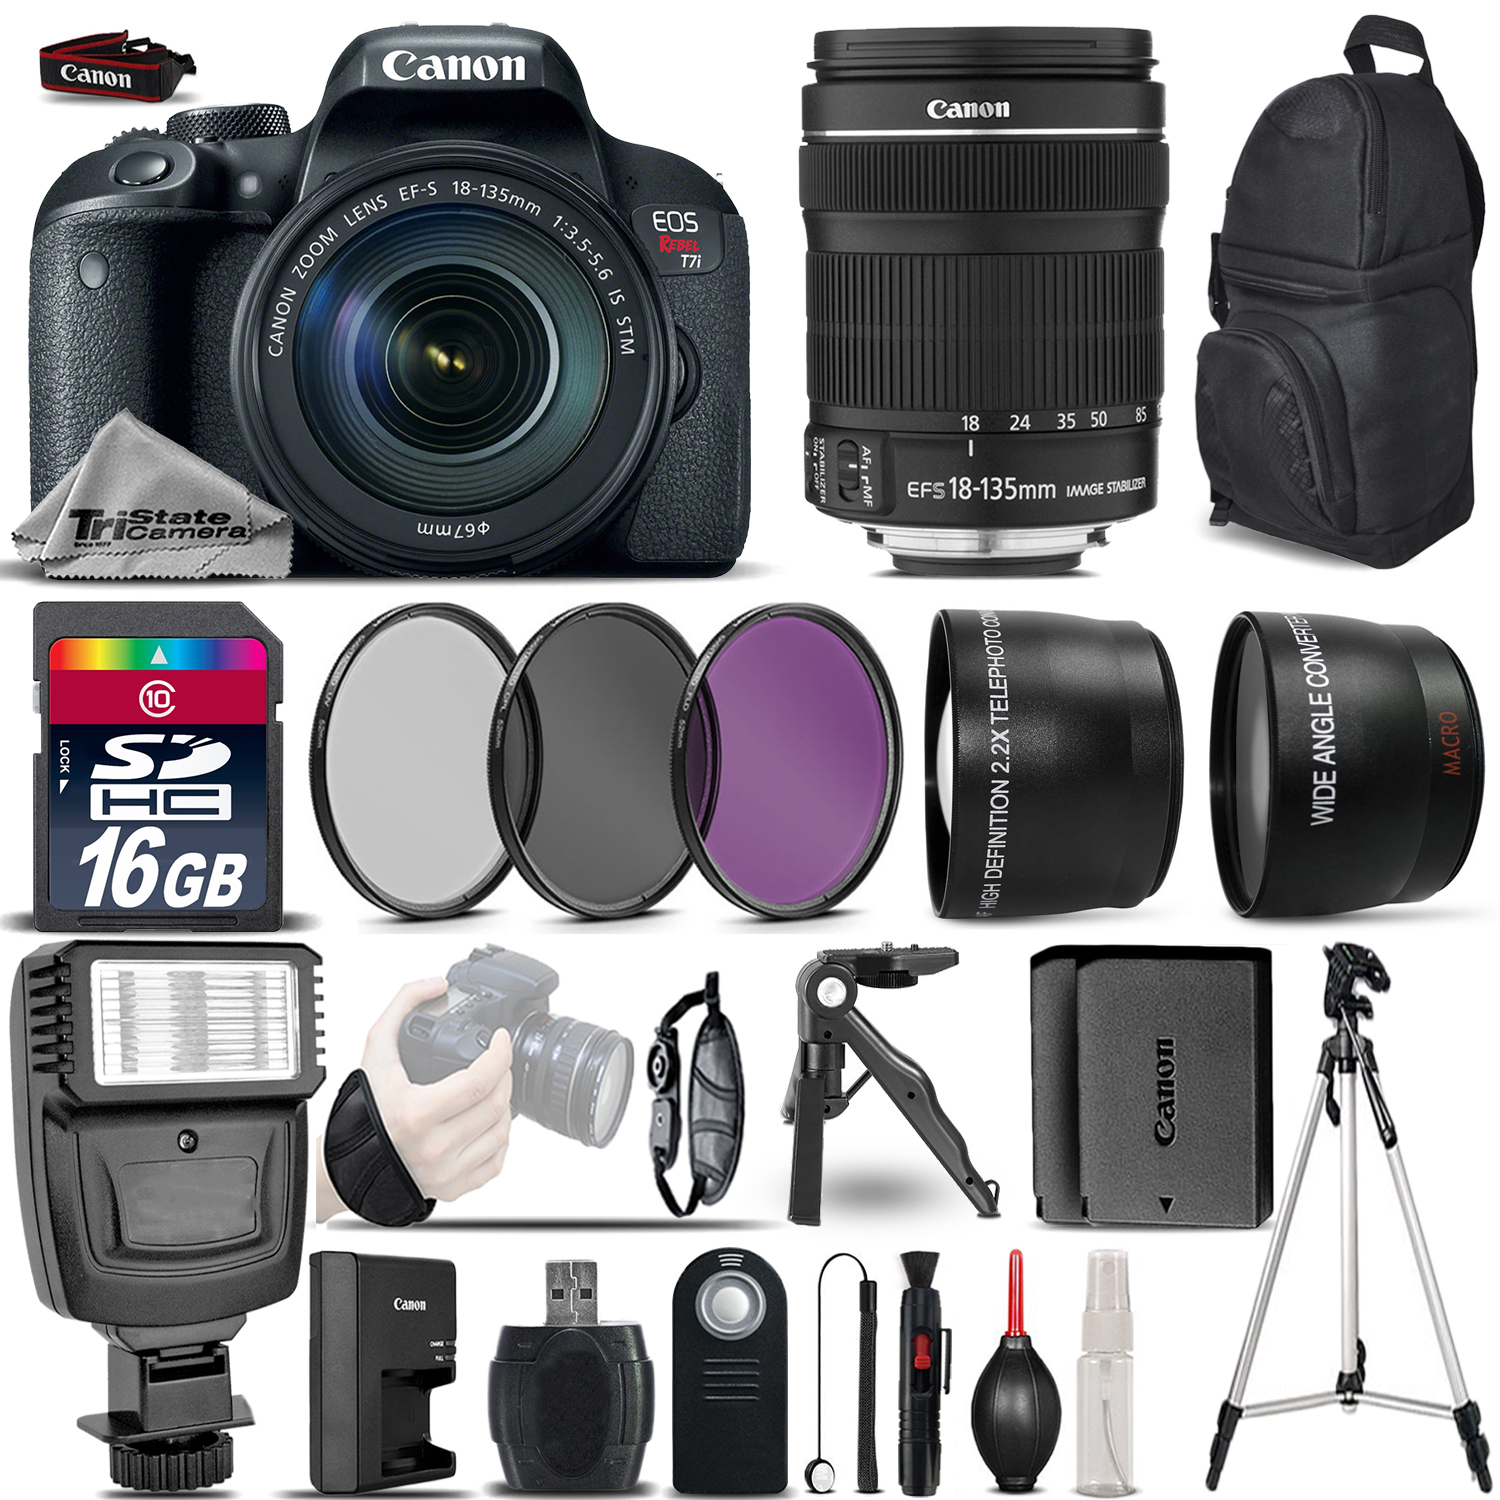 EOS Rebel T7i DSLR Camera 1894C003 + 18-135mm IS - Ultimate Saving Bundle *FREE SHIPPING*